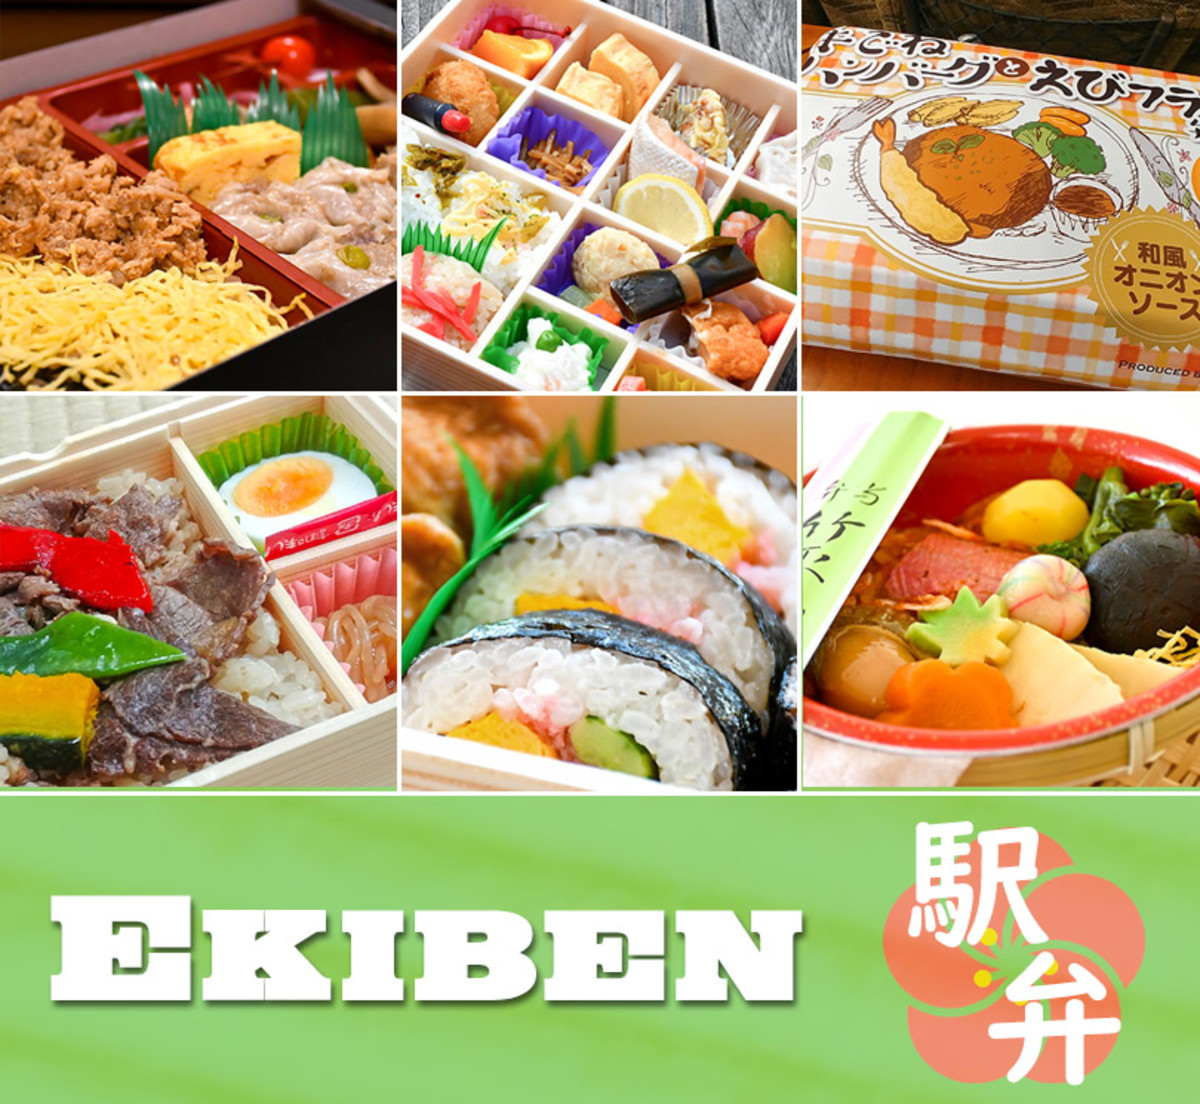 Ekiben: A Delicious Way to Travel in Japan